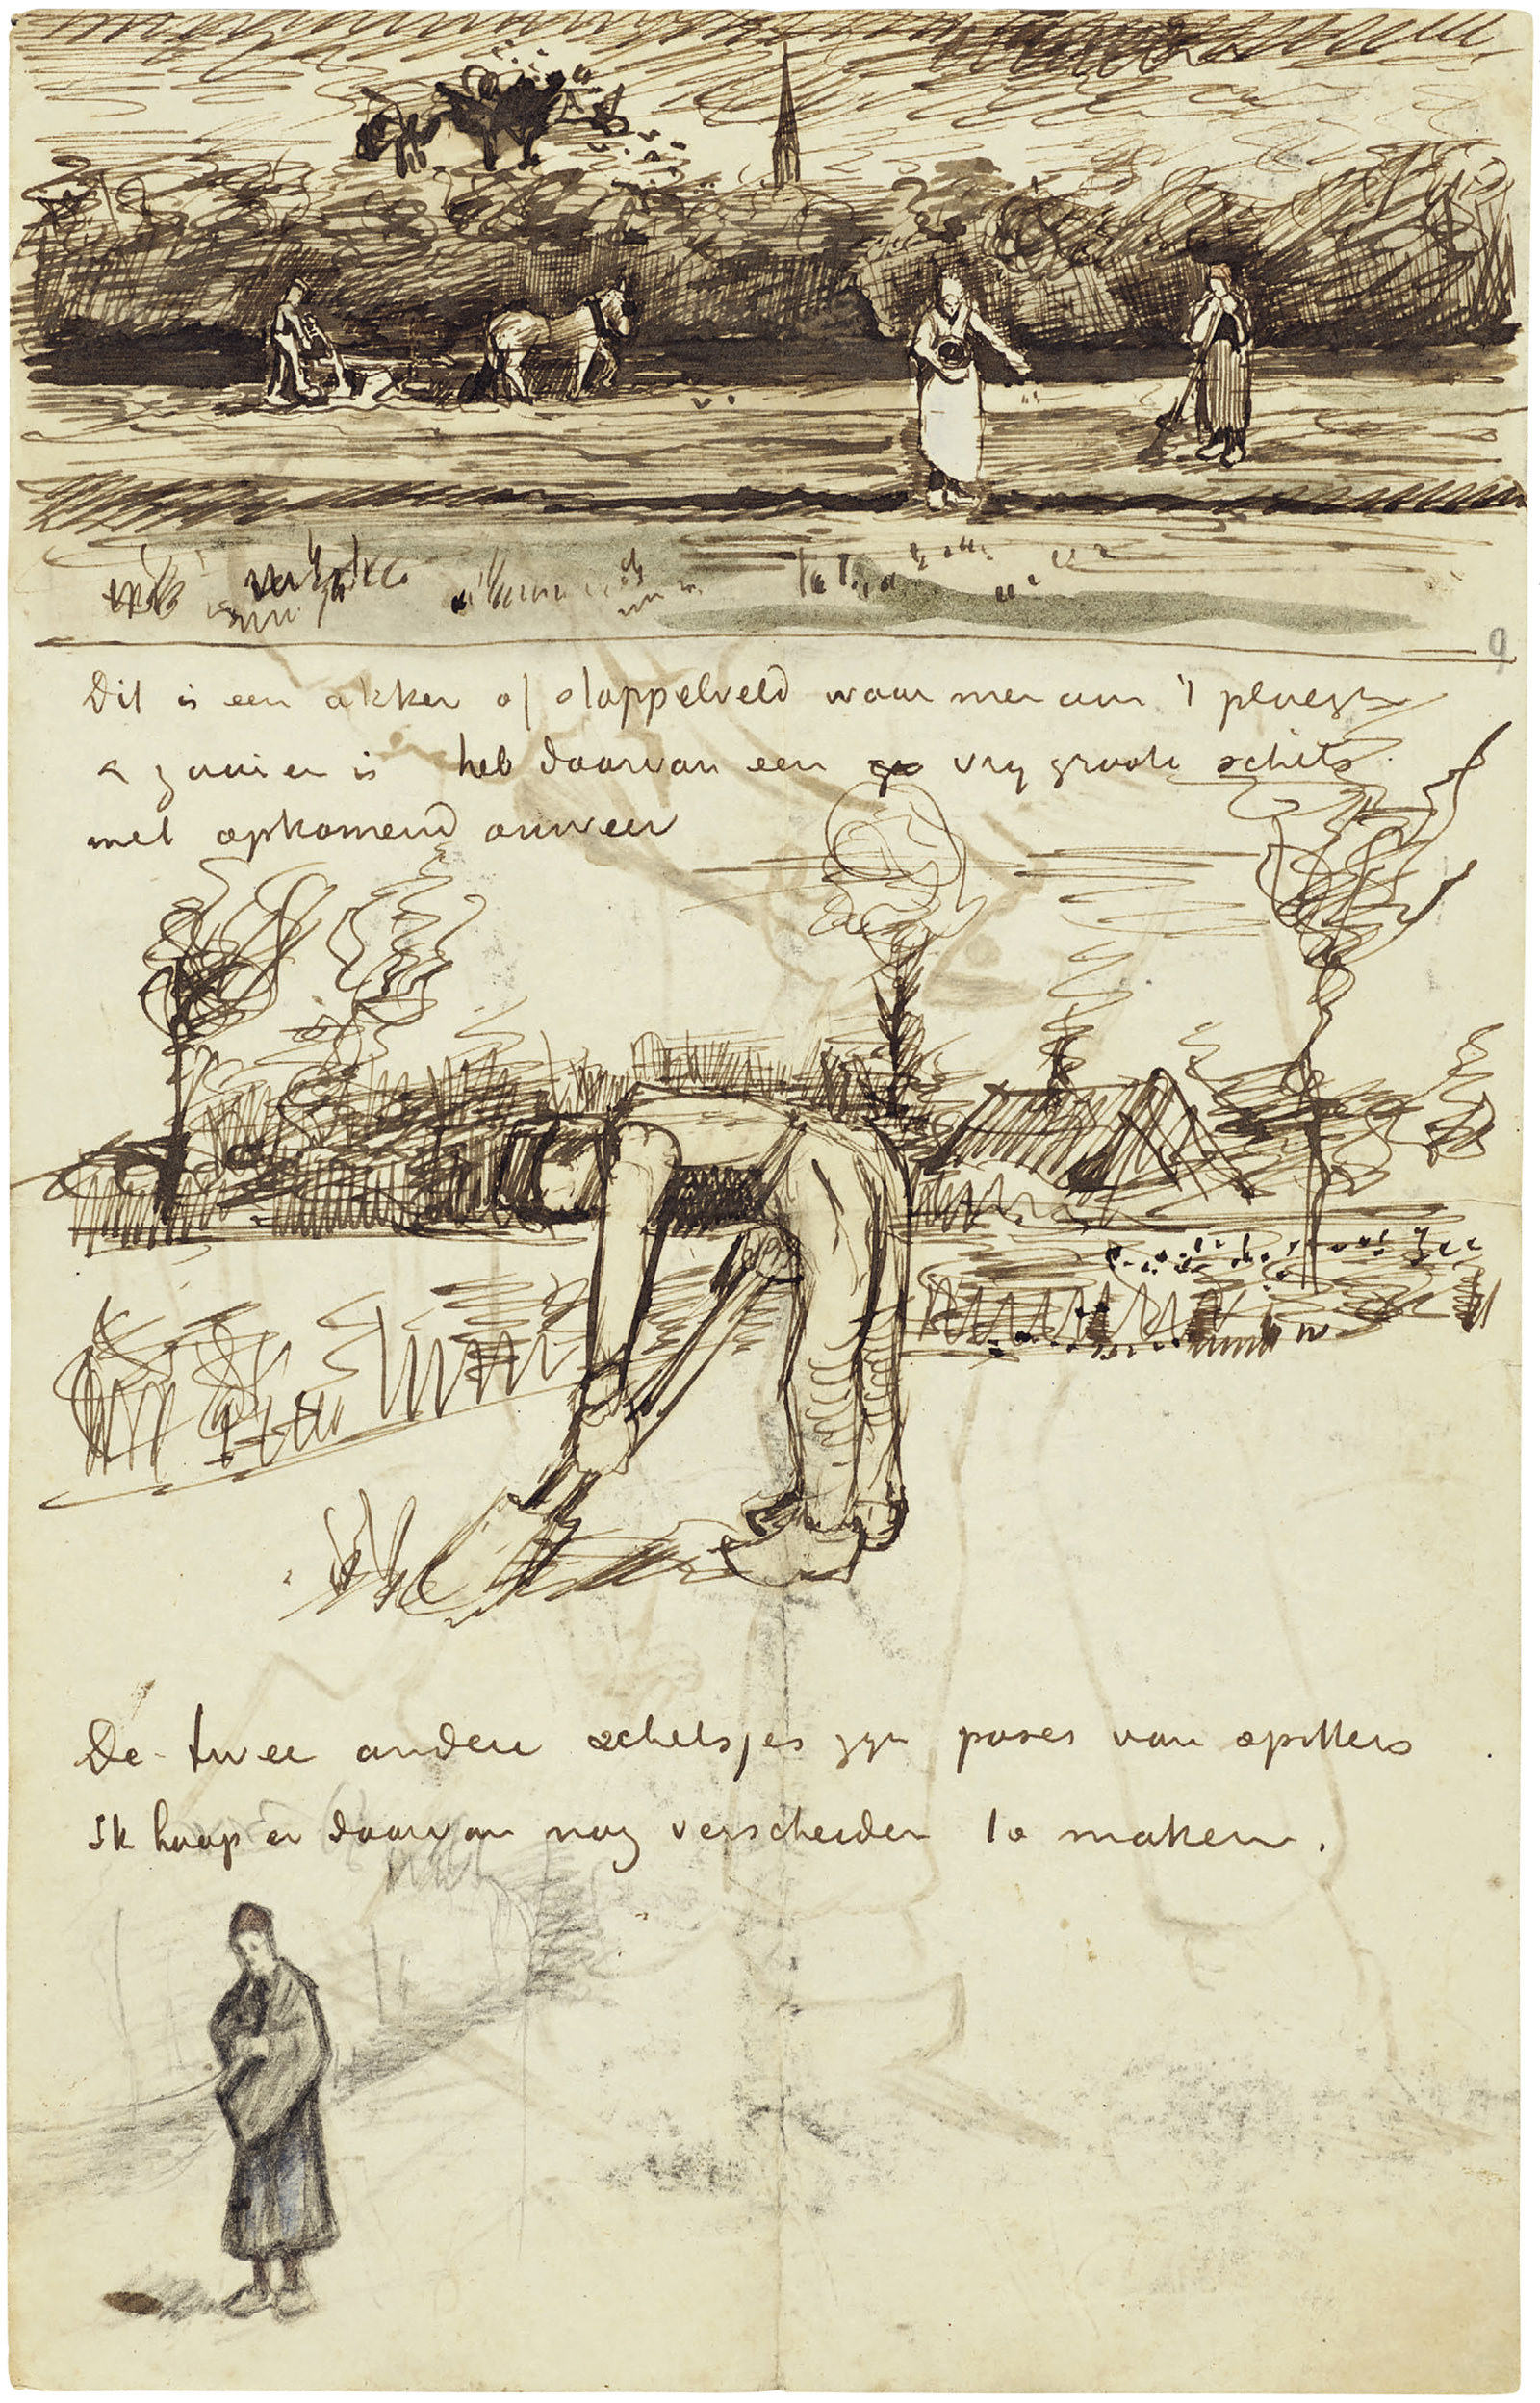 A letter from Vincent van Gogh to Theo van Gogh, September 1881